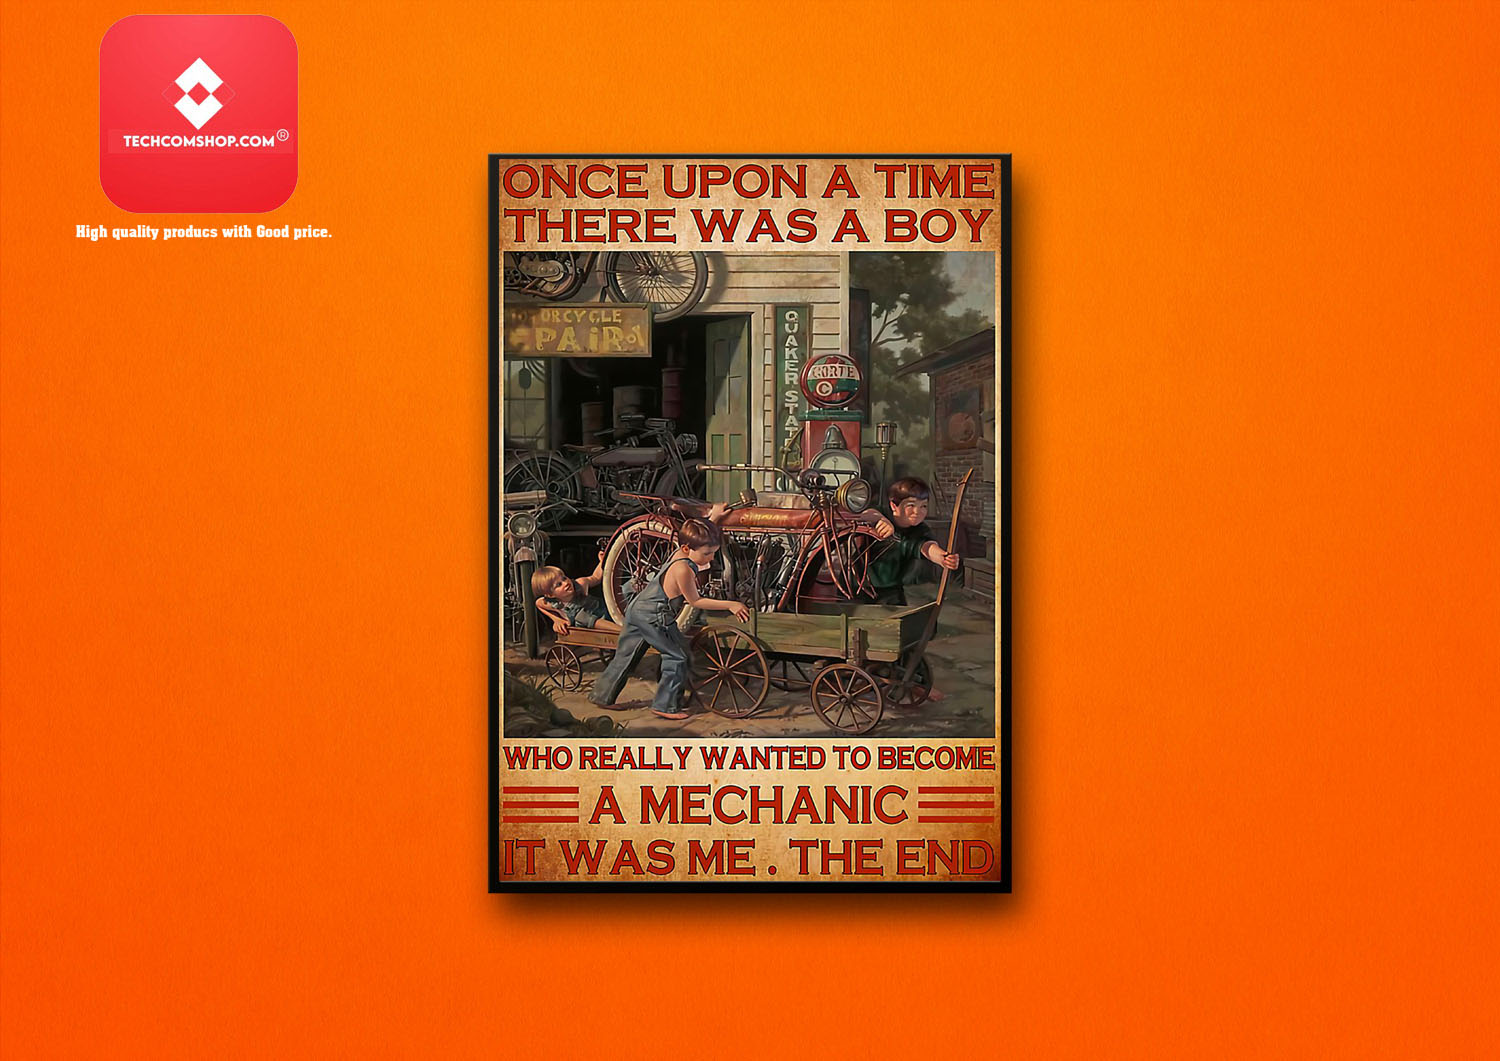 Once upon a time there was a boy who really wanted to become a mechanic poster 7